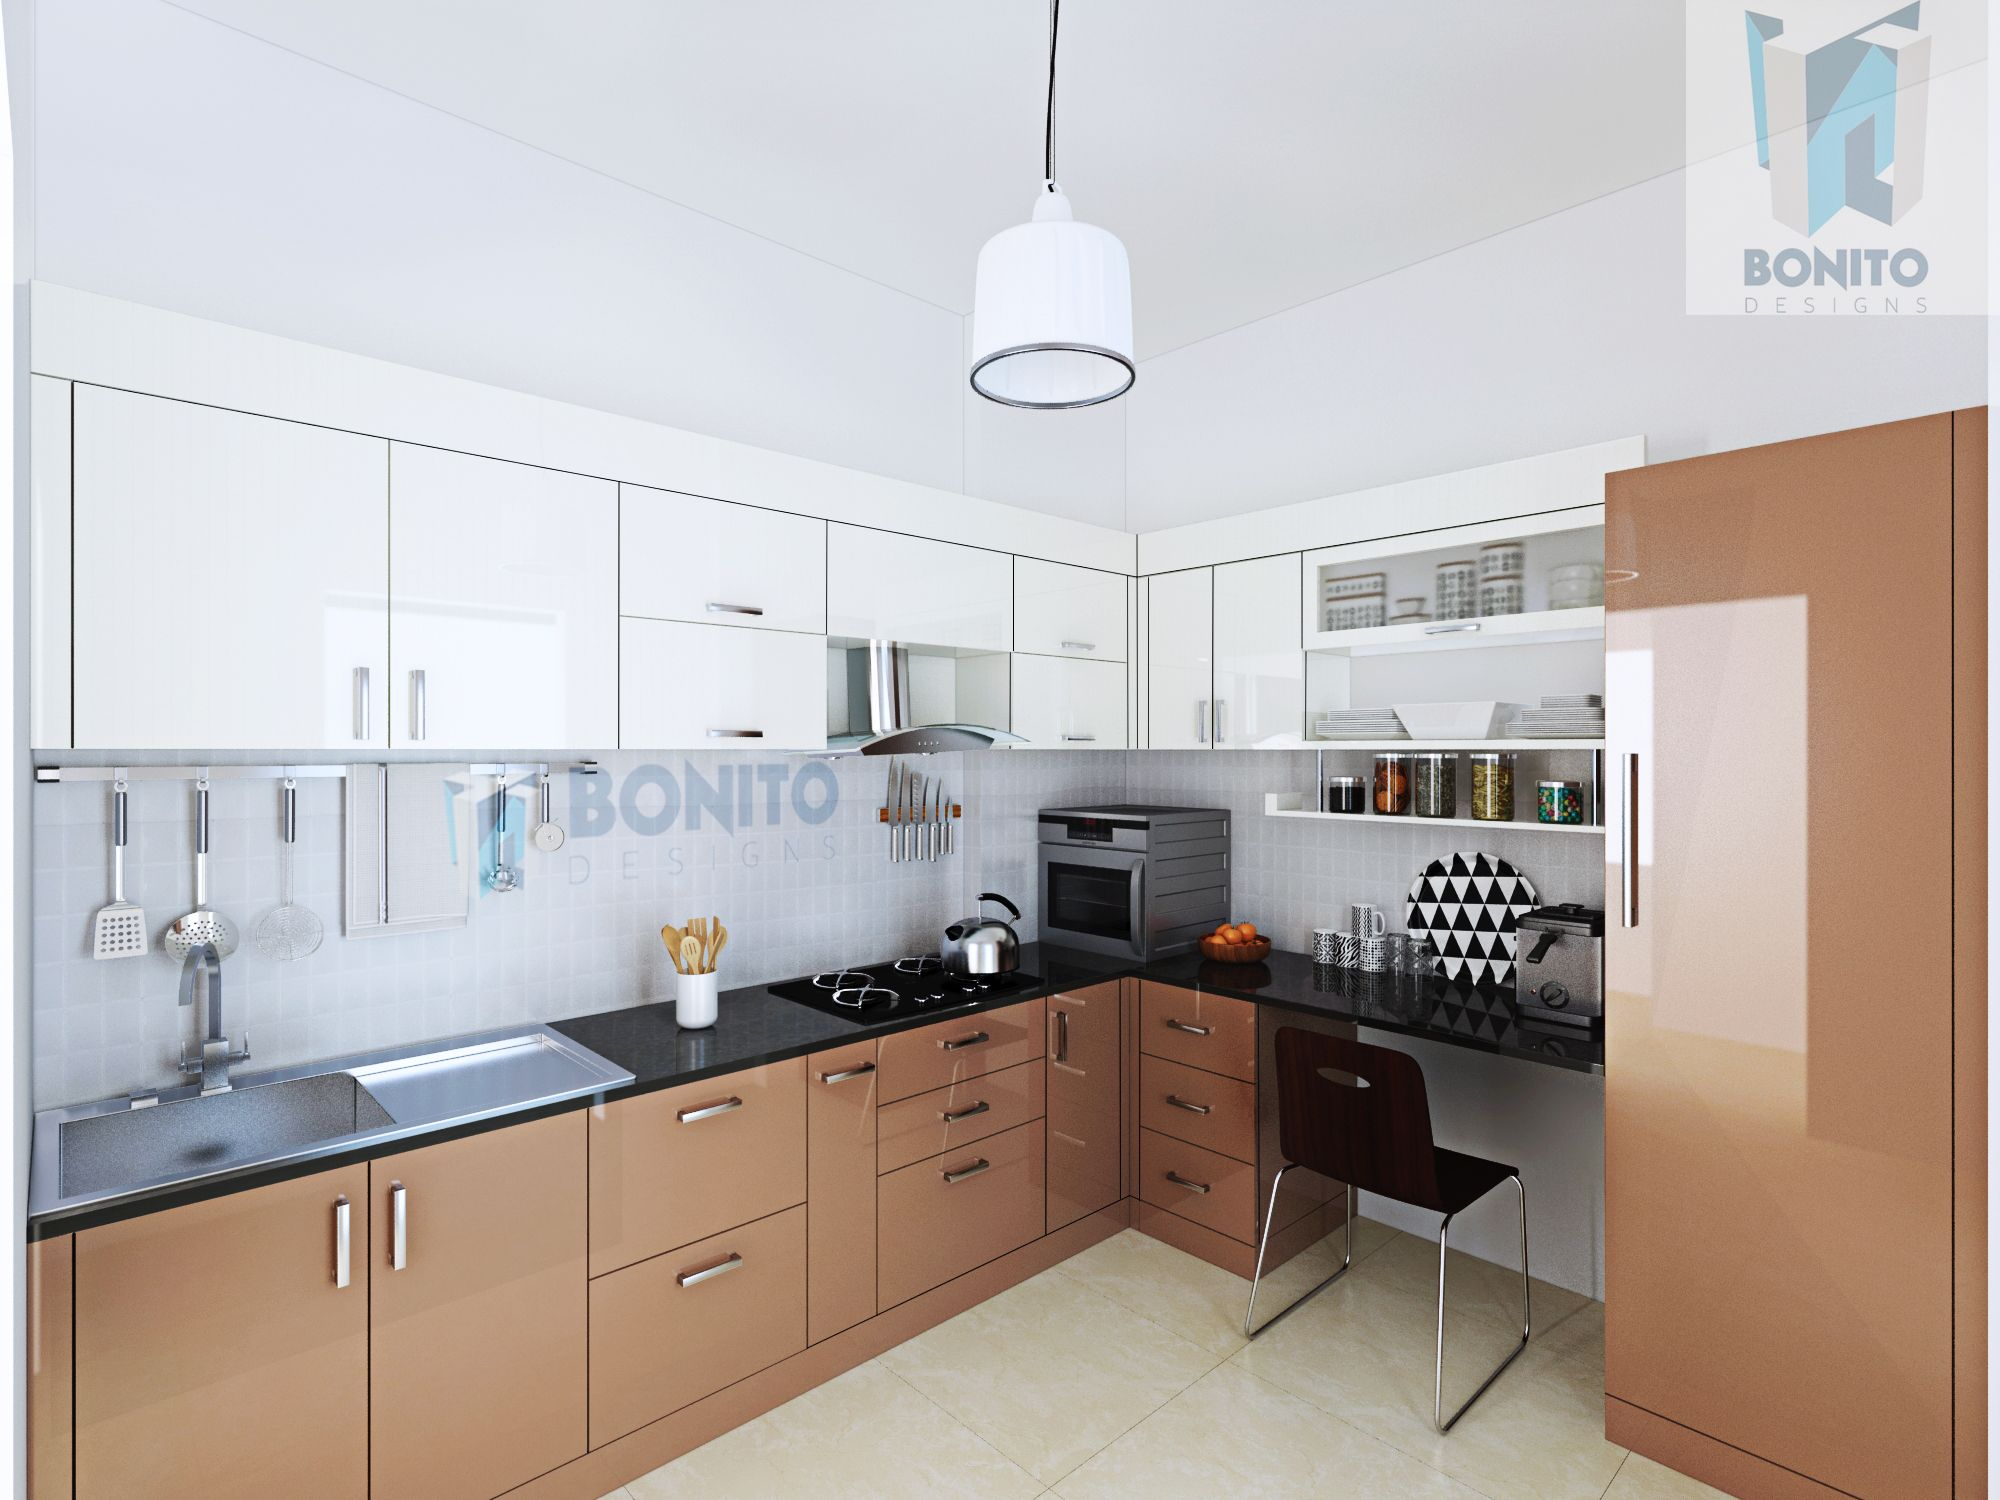 Modular kitchen taken to a new level by Bonito Designs. The ...